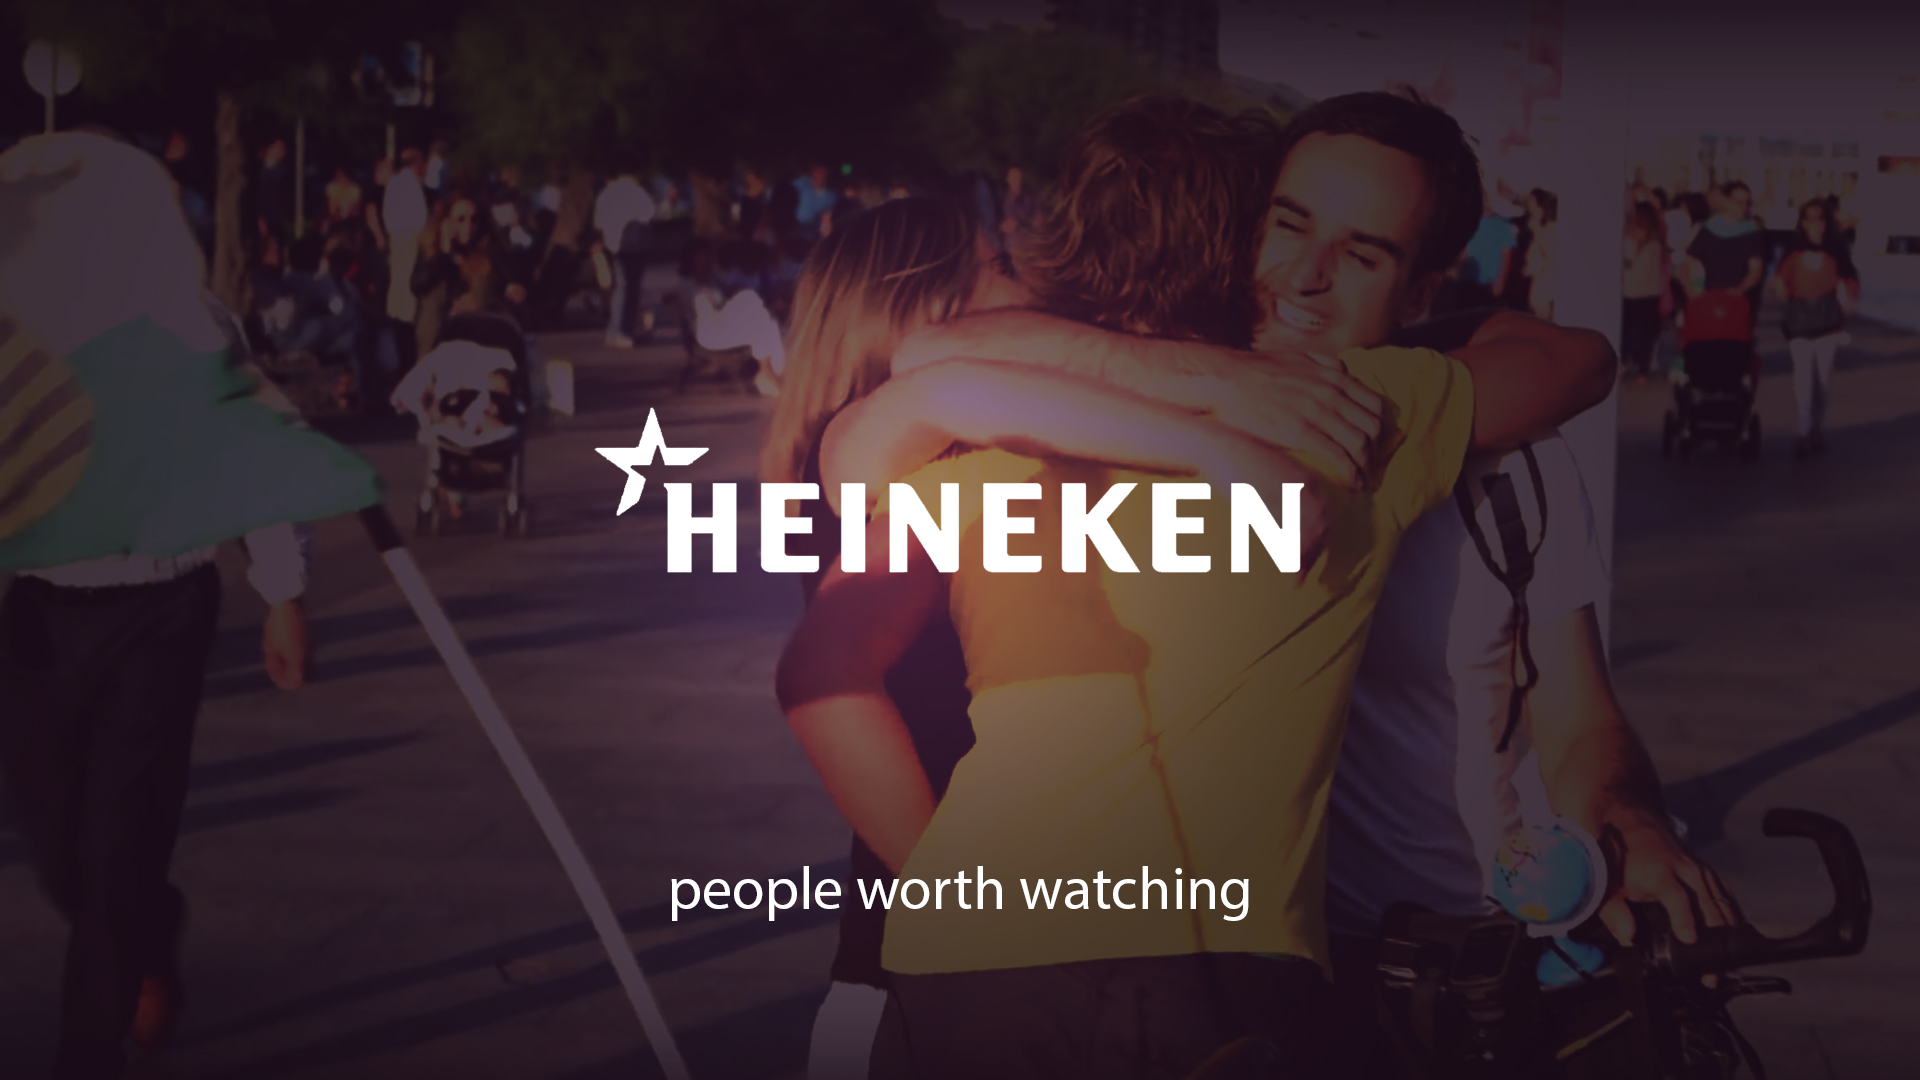 Heineken social people